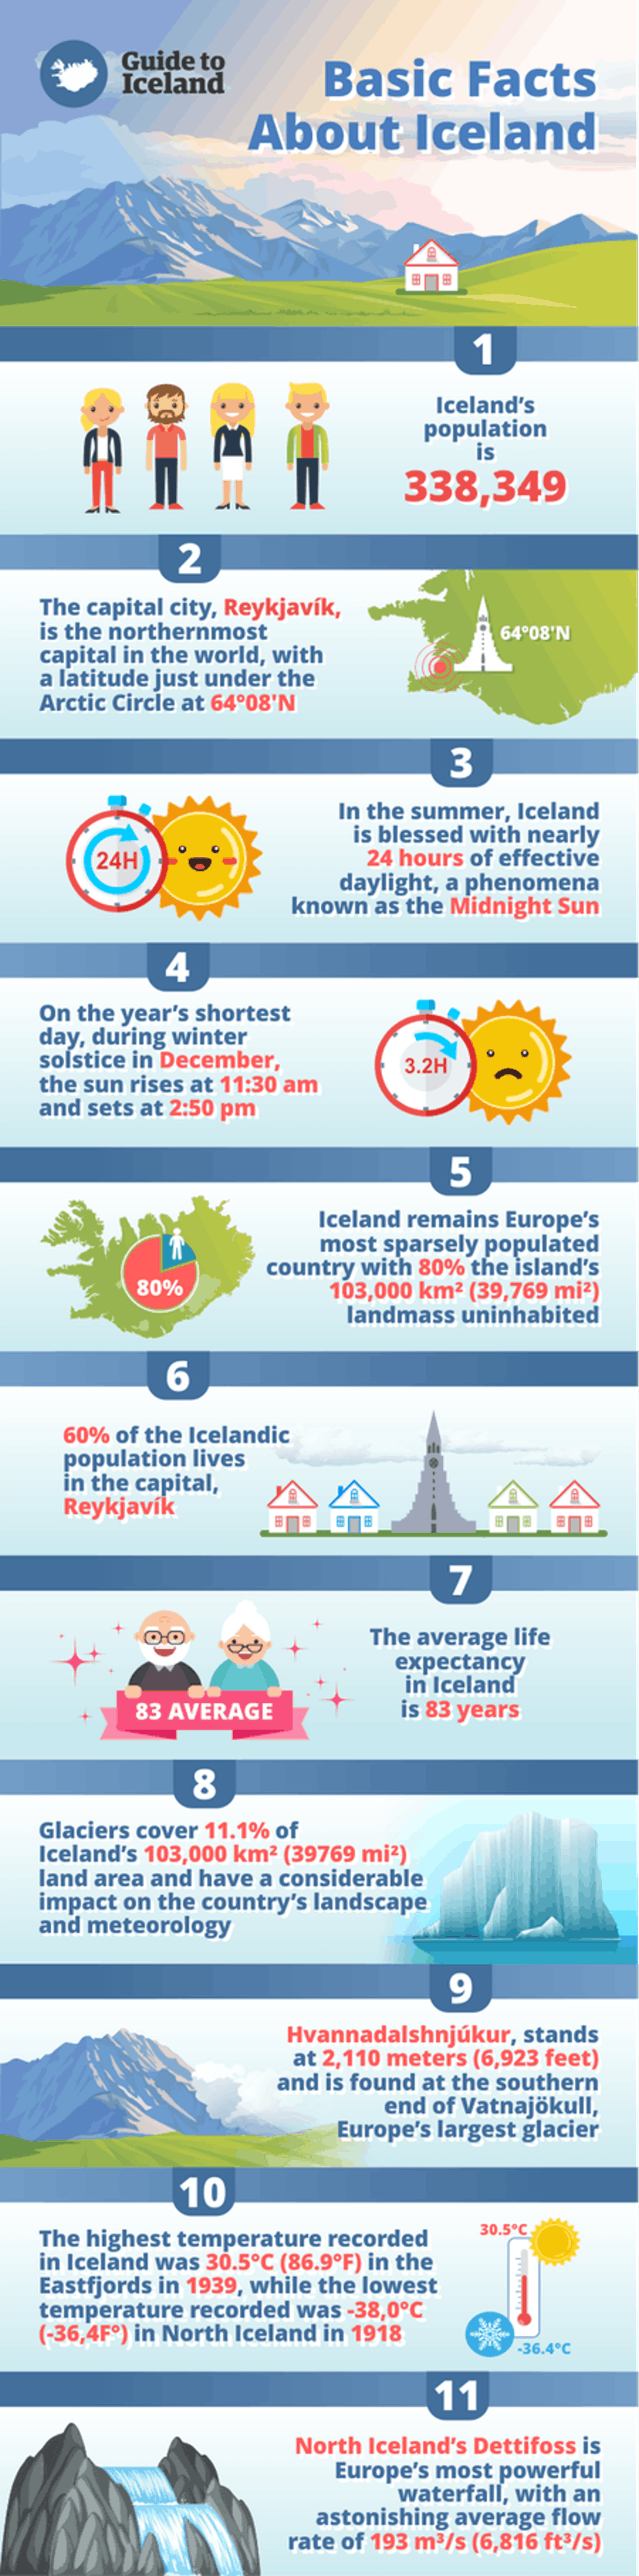 Though it may only a small country, Iceland knows how to top many of the world's statistics.